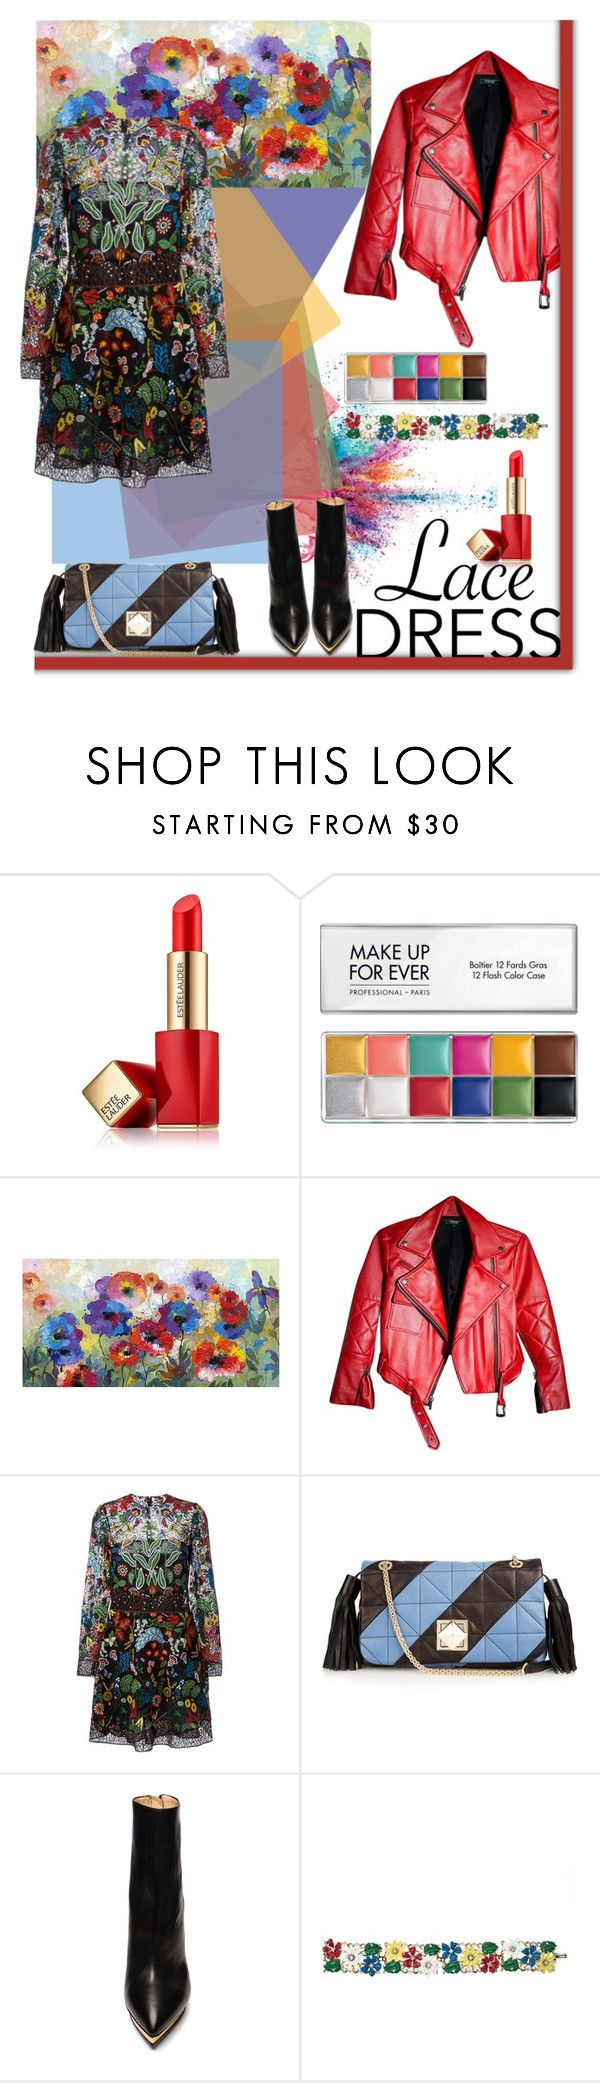 """color lace"" by iraavalon ❤ liked on Polyvore featuring moda, Givenchy, Estée Lauder, Universal Lighting and Decor, Valentino, Sonia Rykiel, Charlotte Olympia e Trifari"